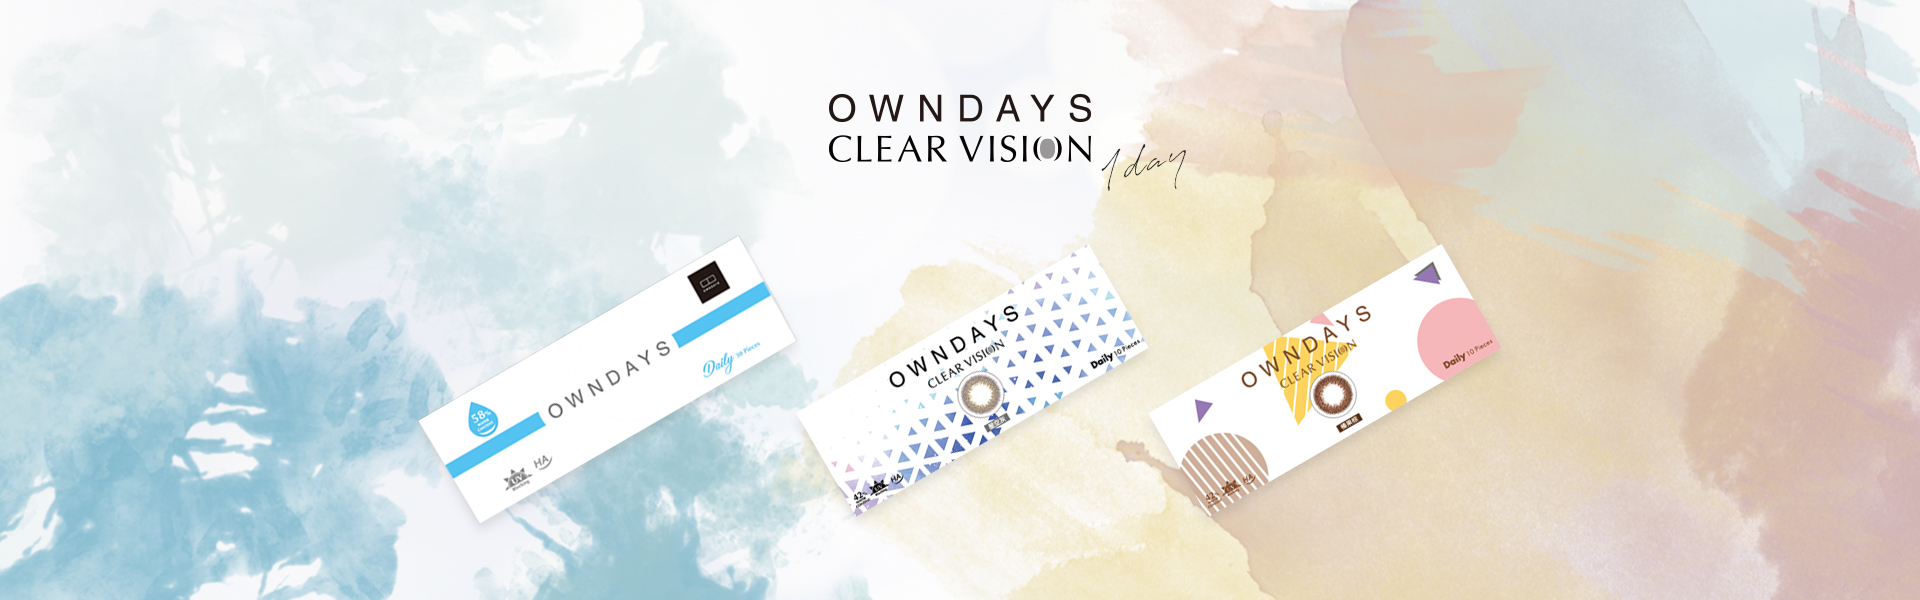 OWNDAYS CLEAR VISION